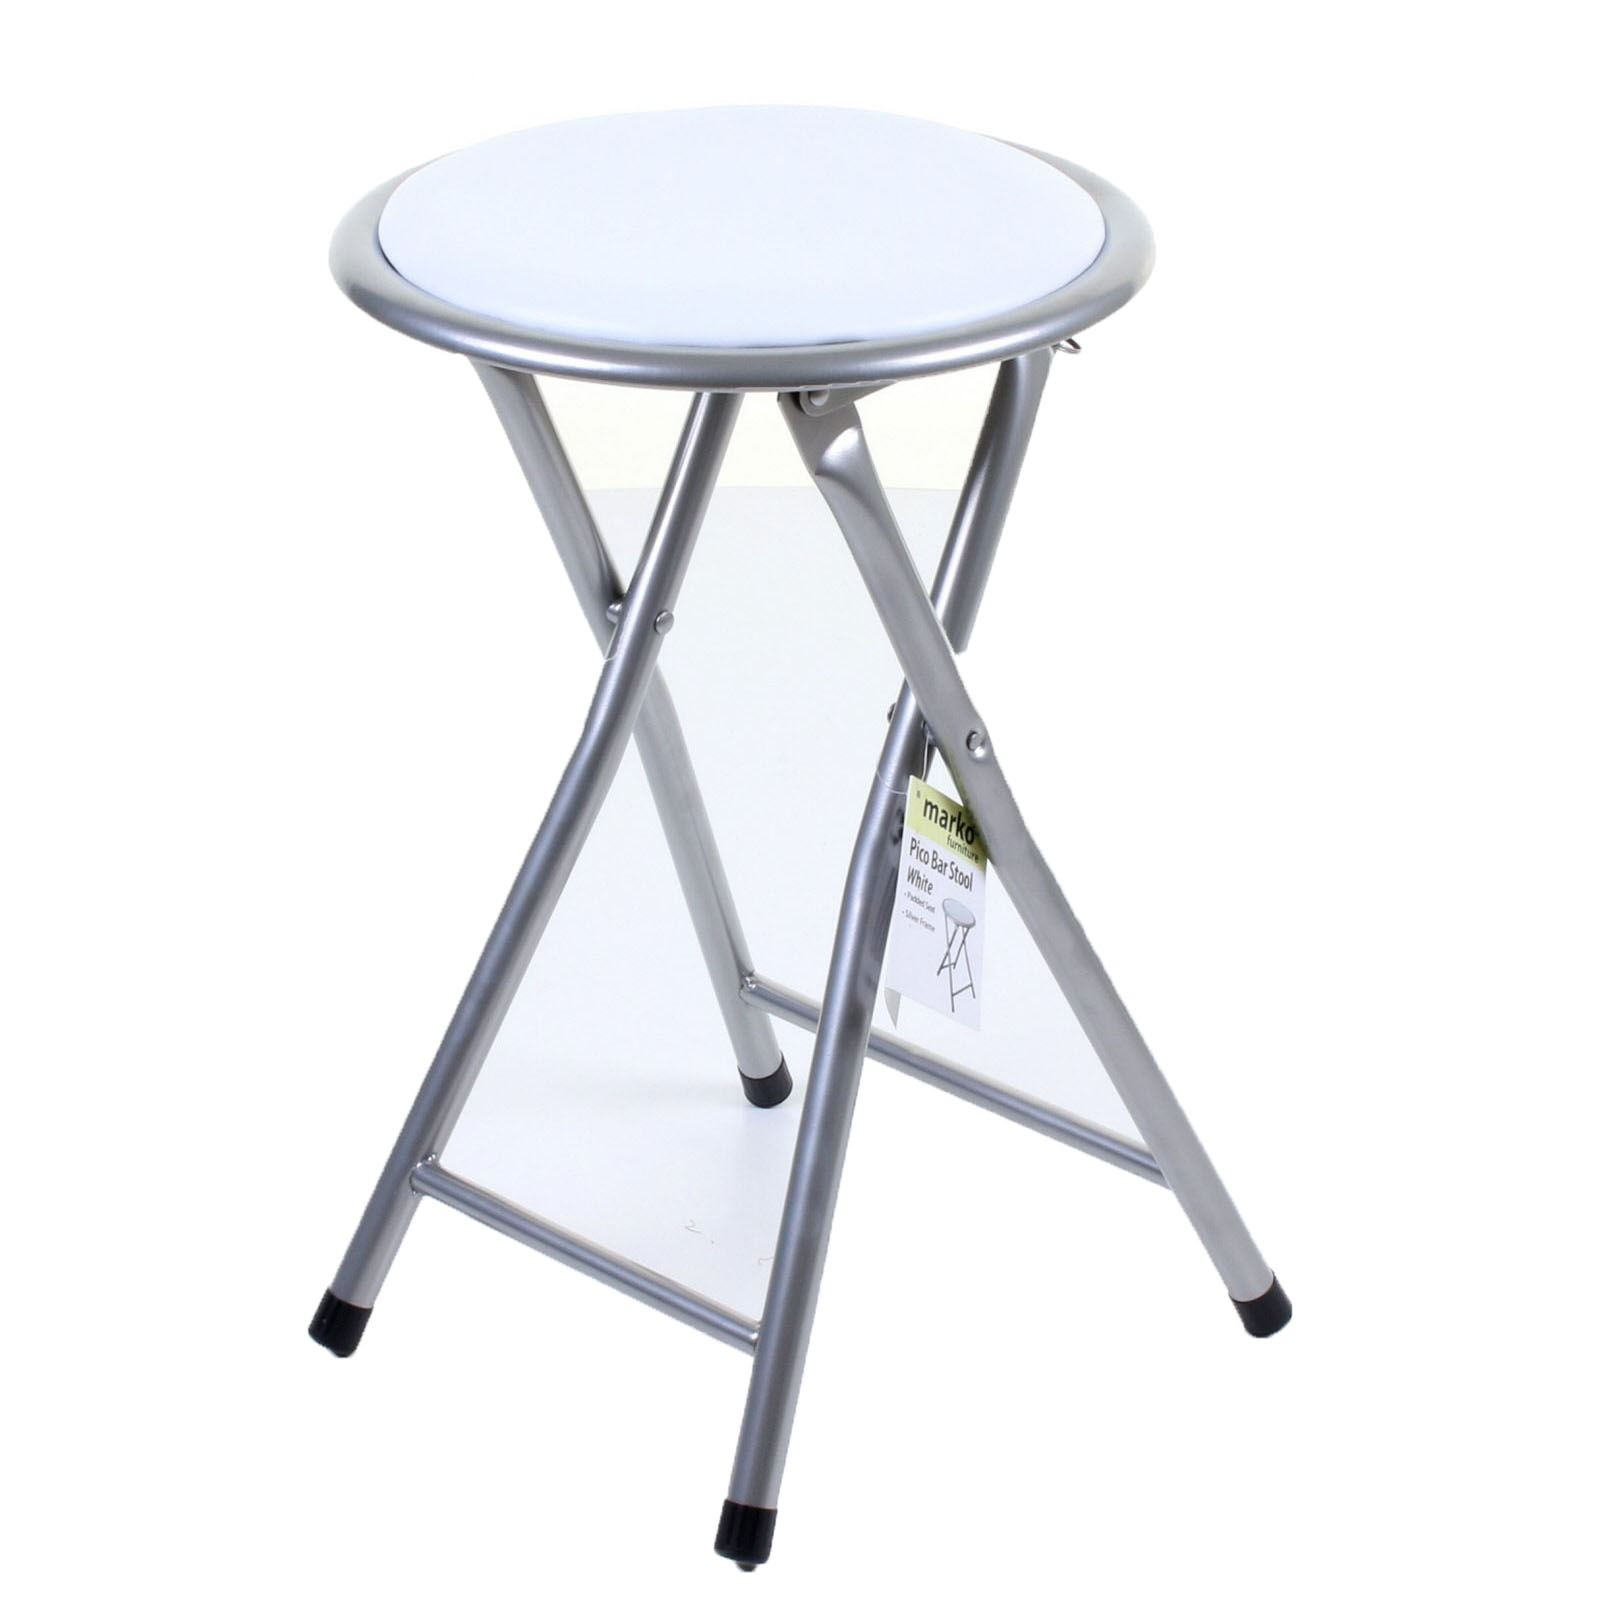 Round Folding Padded Stool Foldable Chair Small Breakfast Fold Up